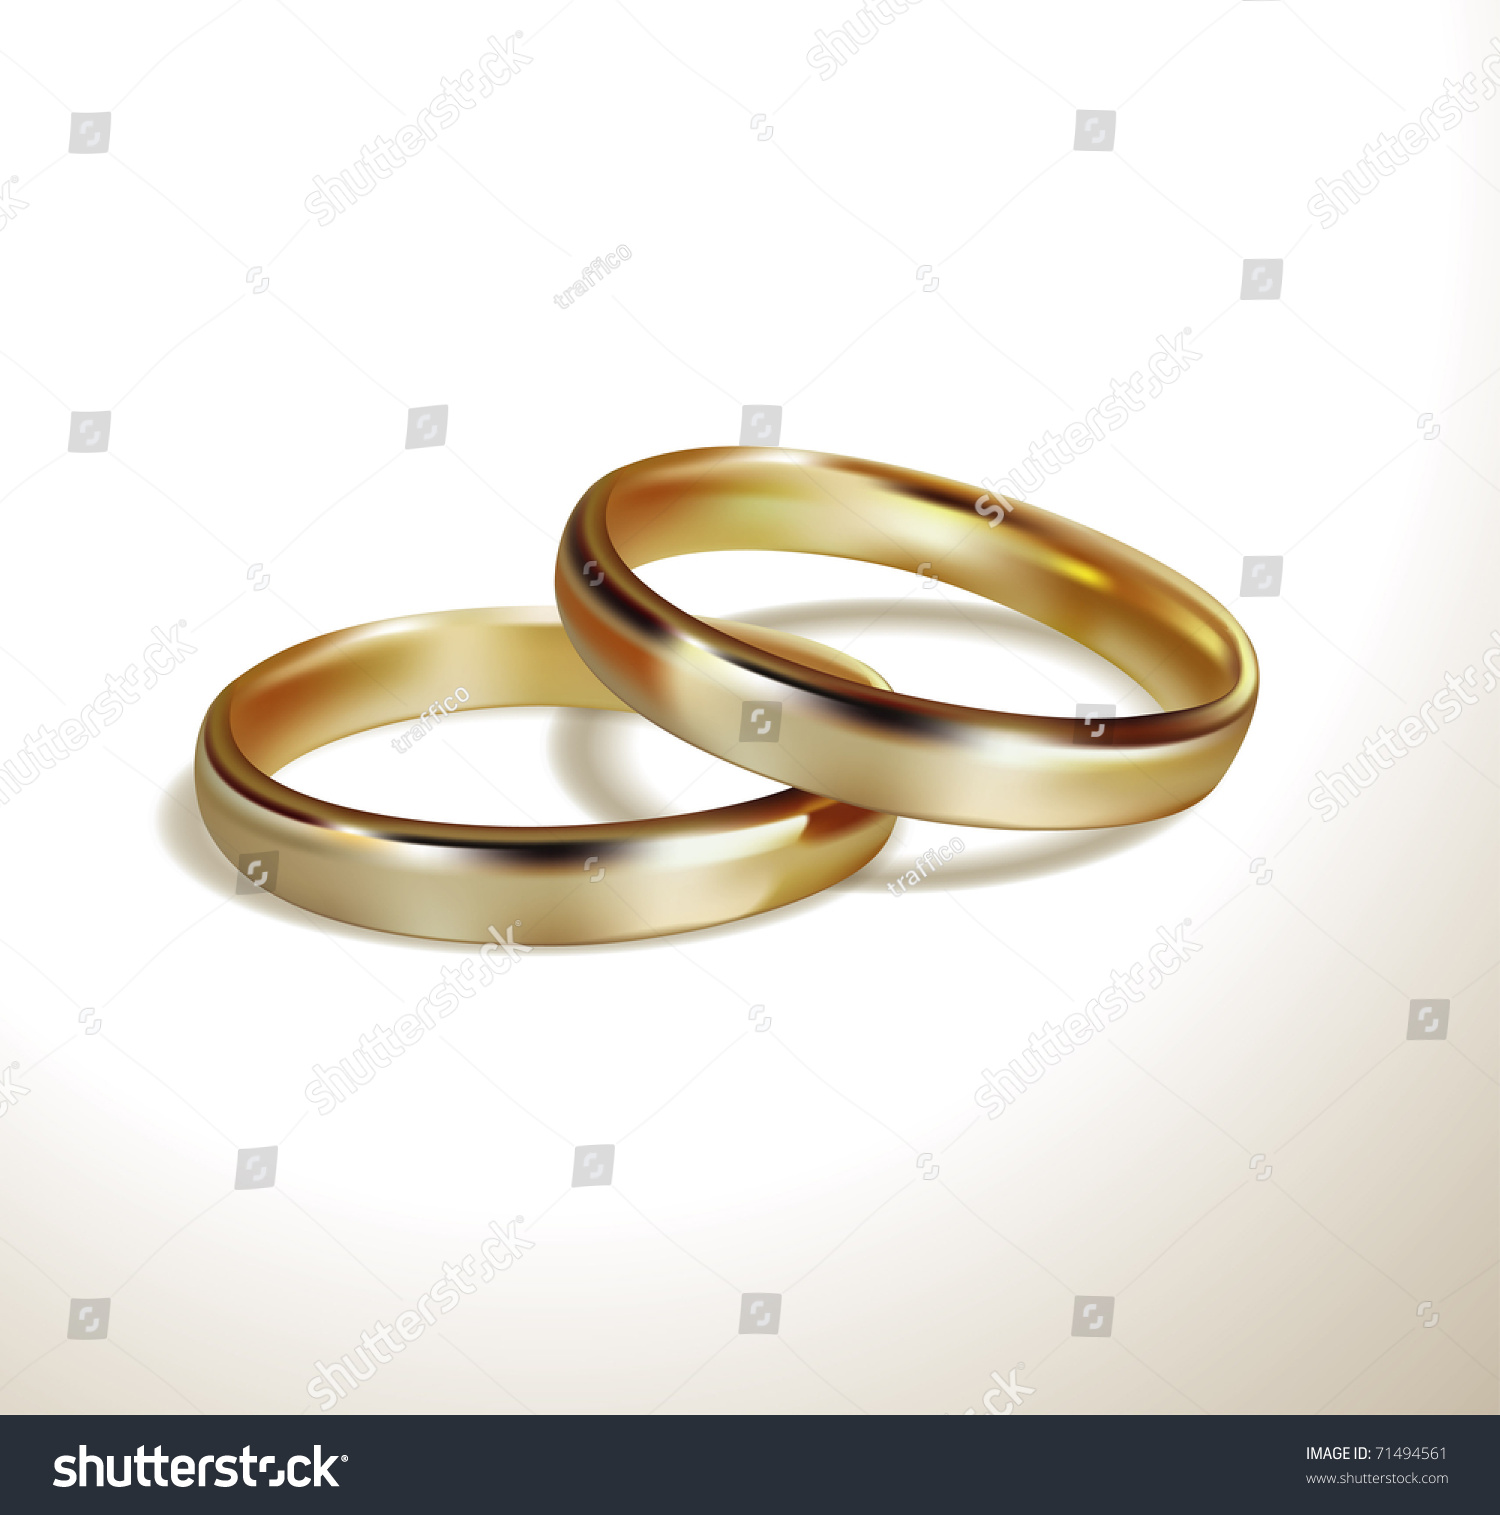 baunat wedding in en golden surface a s domed men gr mm with slightly rings ring of gold red ma